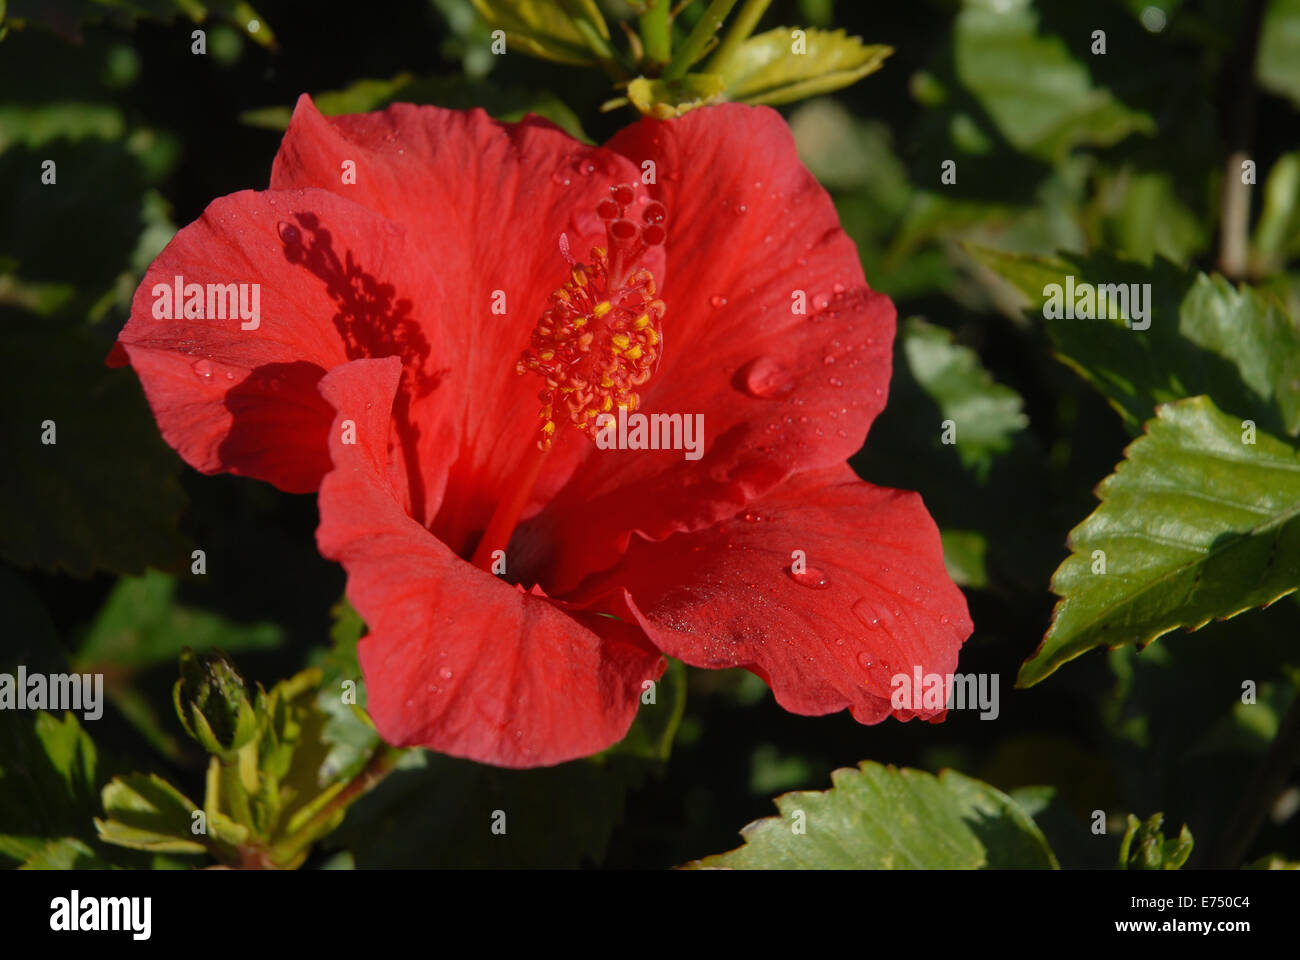 Red hibiscus in full bloom stock photos red hibiscus in full bloom red hibiscus flower with early morning dew stock image izmirmasajfo